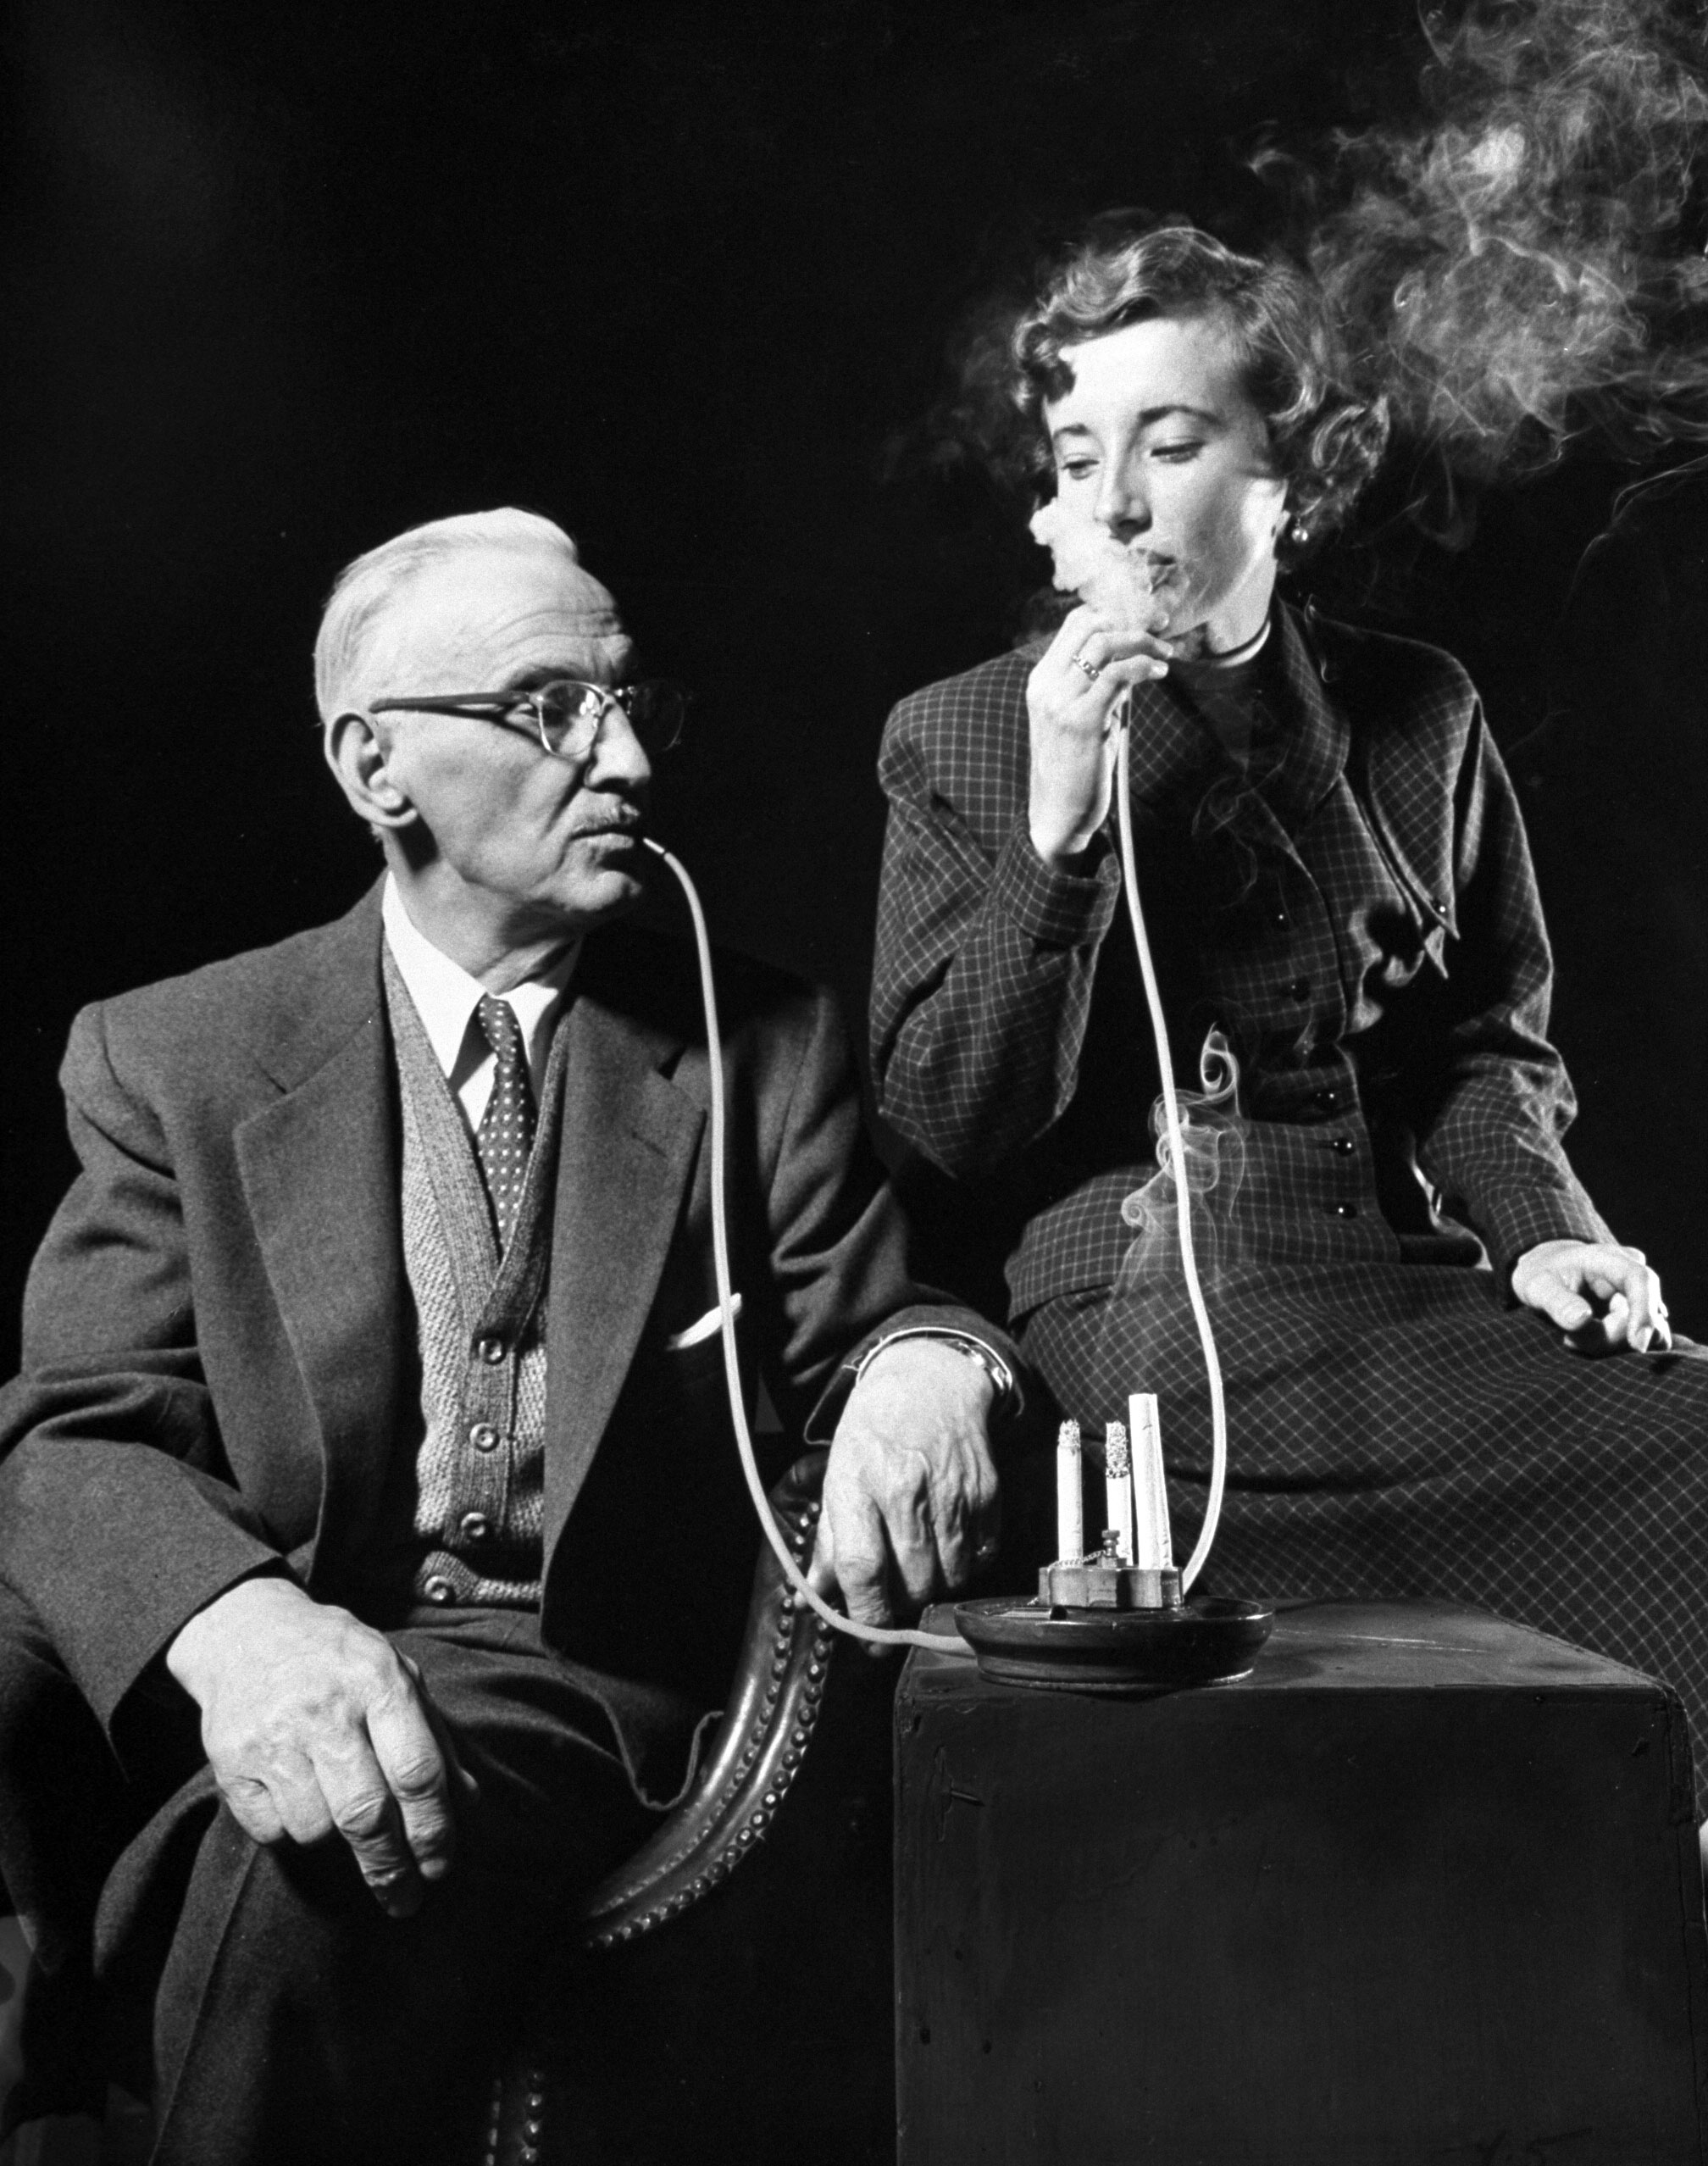 <b>Caption from LIFE.</b> Remote smoker to be placed at the bedside is demonstrated by Anton Widrich of Eatontown, N.J. and his granddaughter, Helen. Base catches ashes.